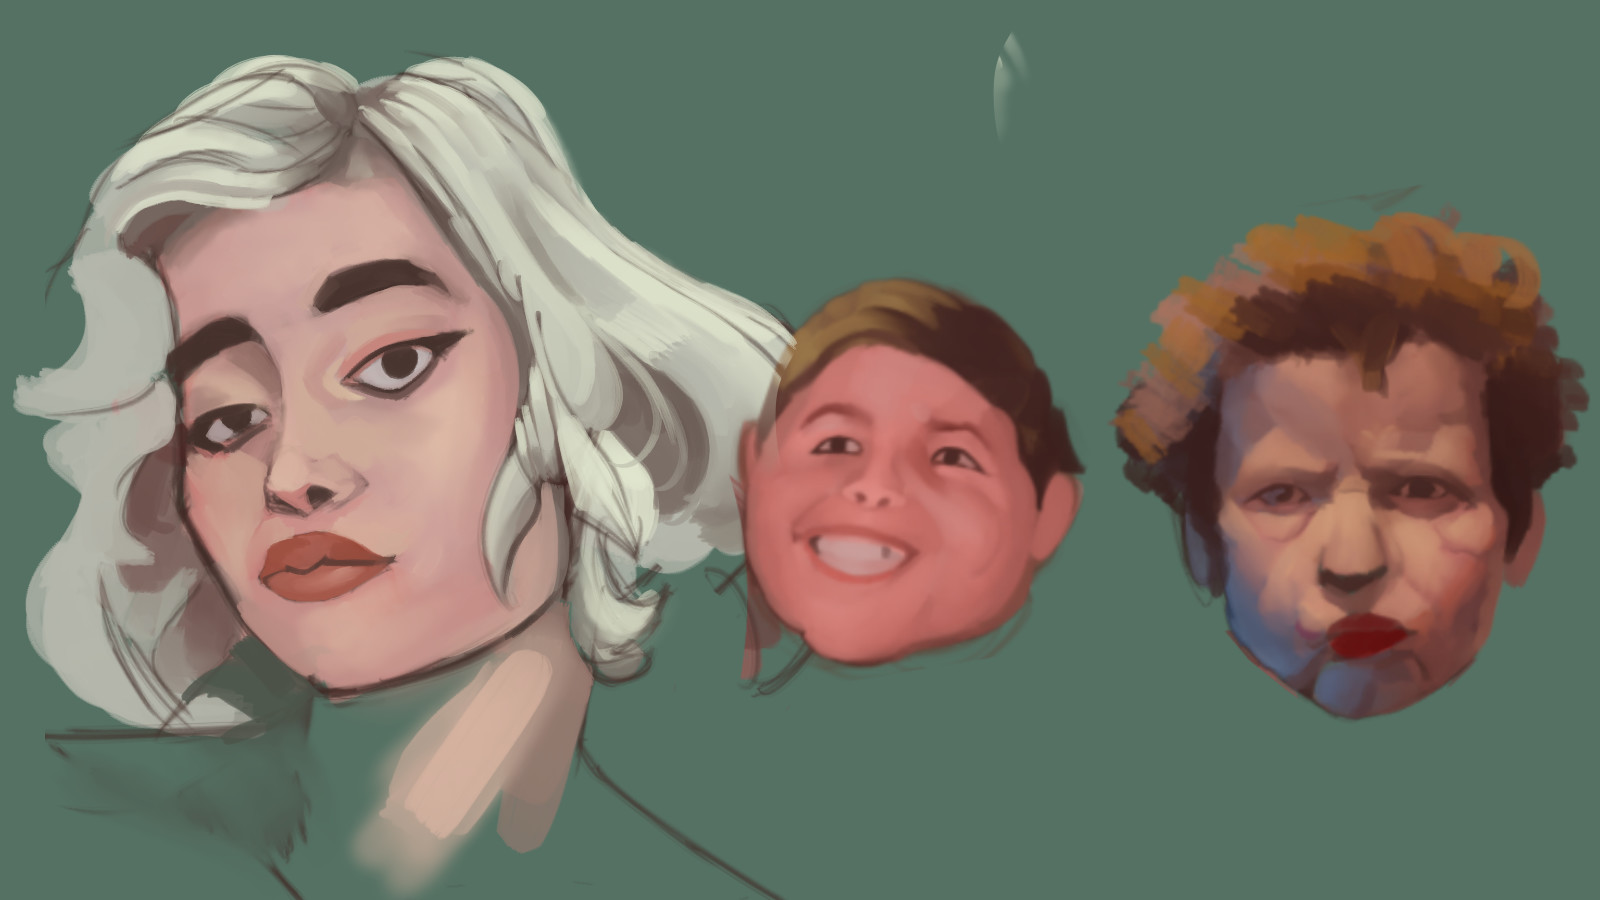 ArtStation - February 2018 Doodle and Roughs, Rhys Meredith